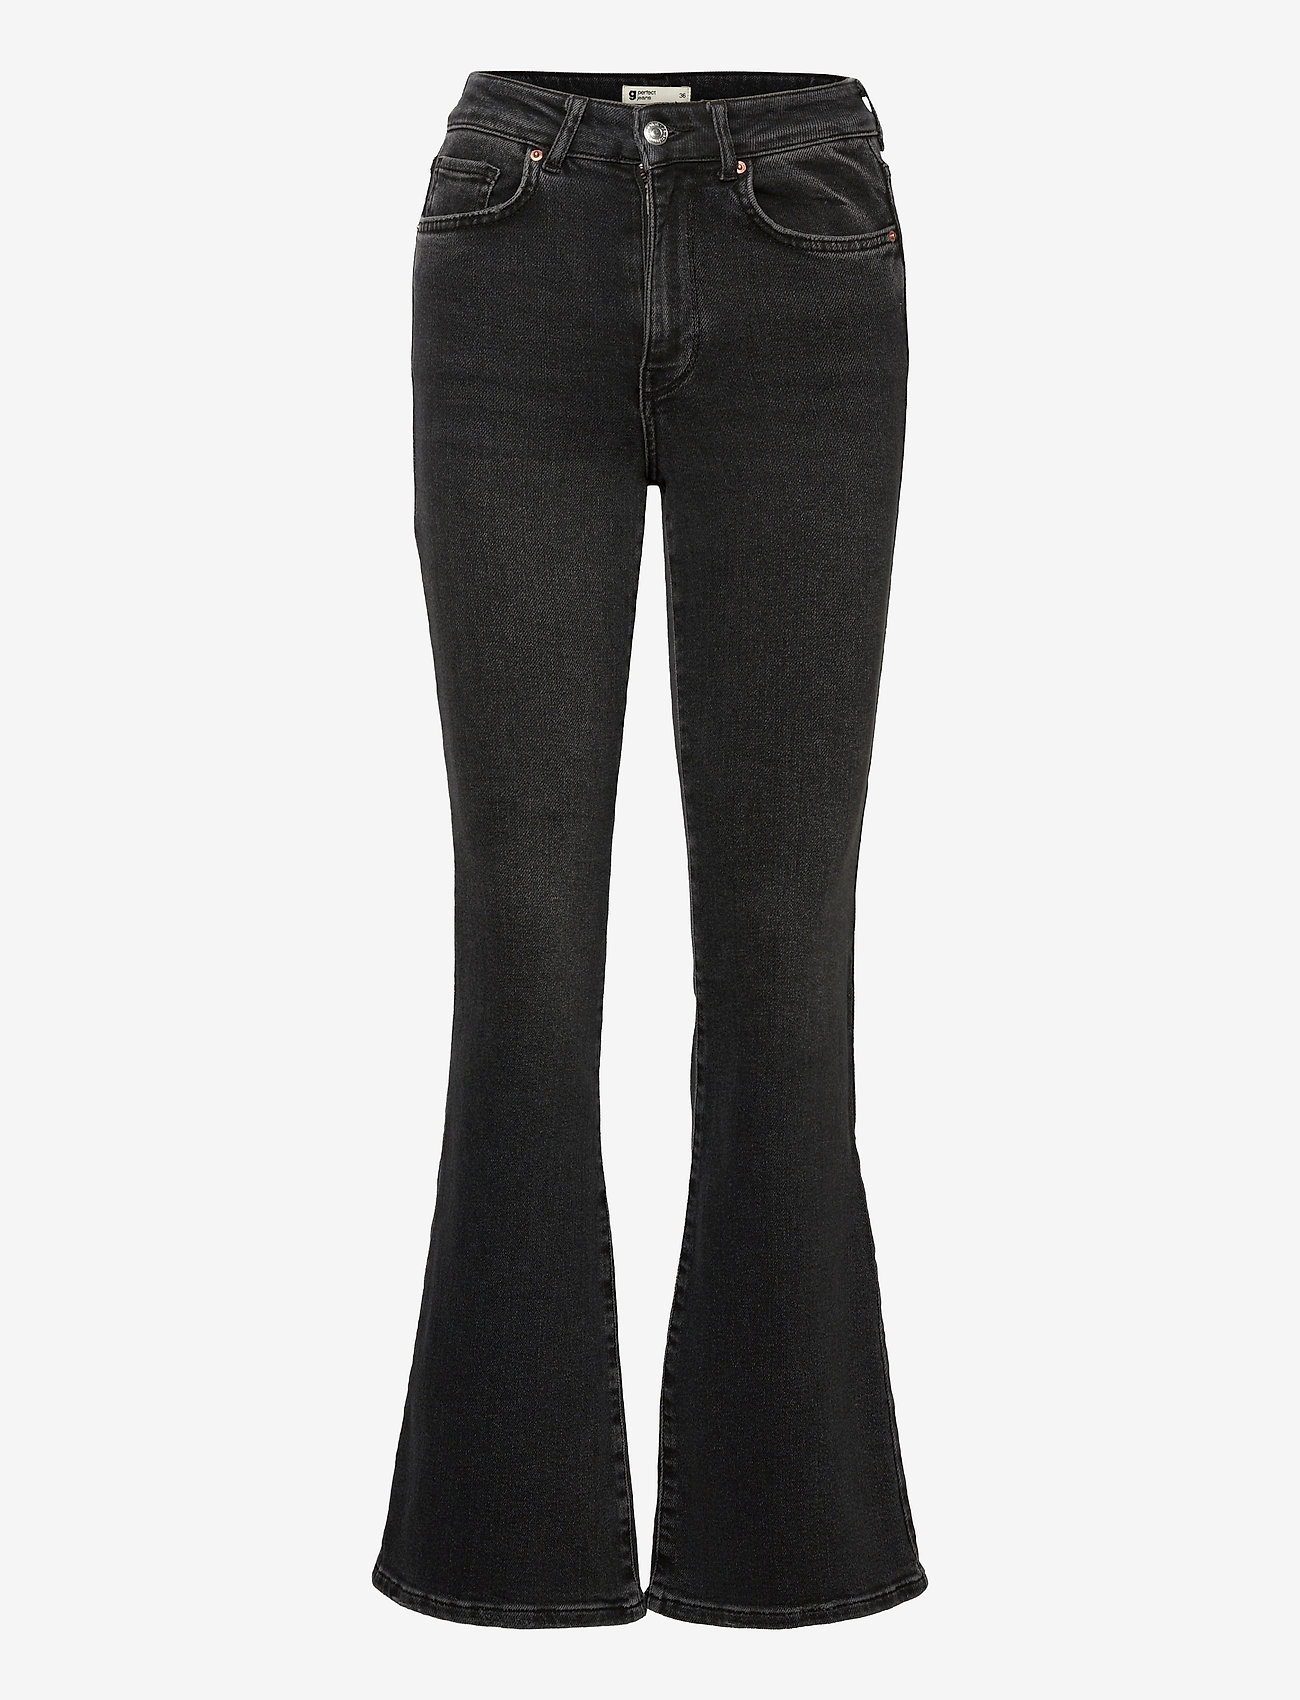 Gina Tricot - Meja flare jeans - schlaghosen - black/grey - 0